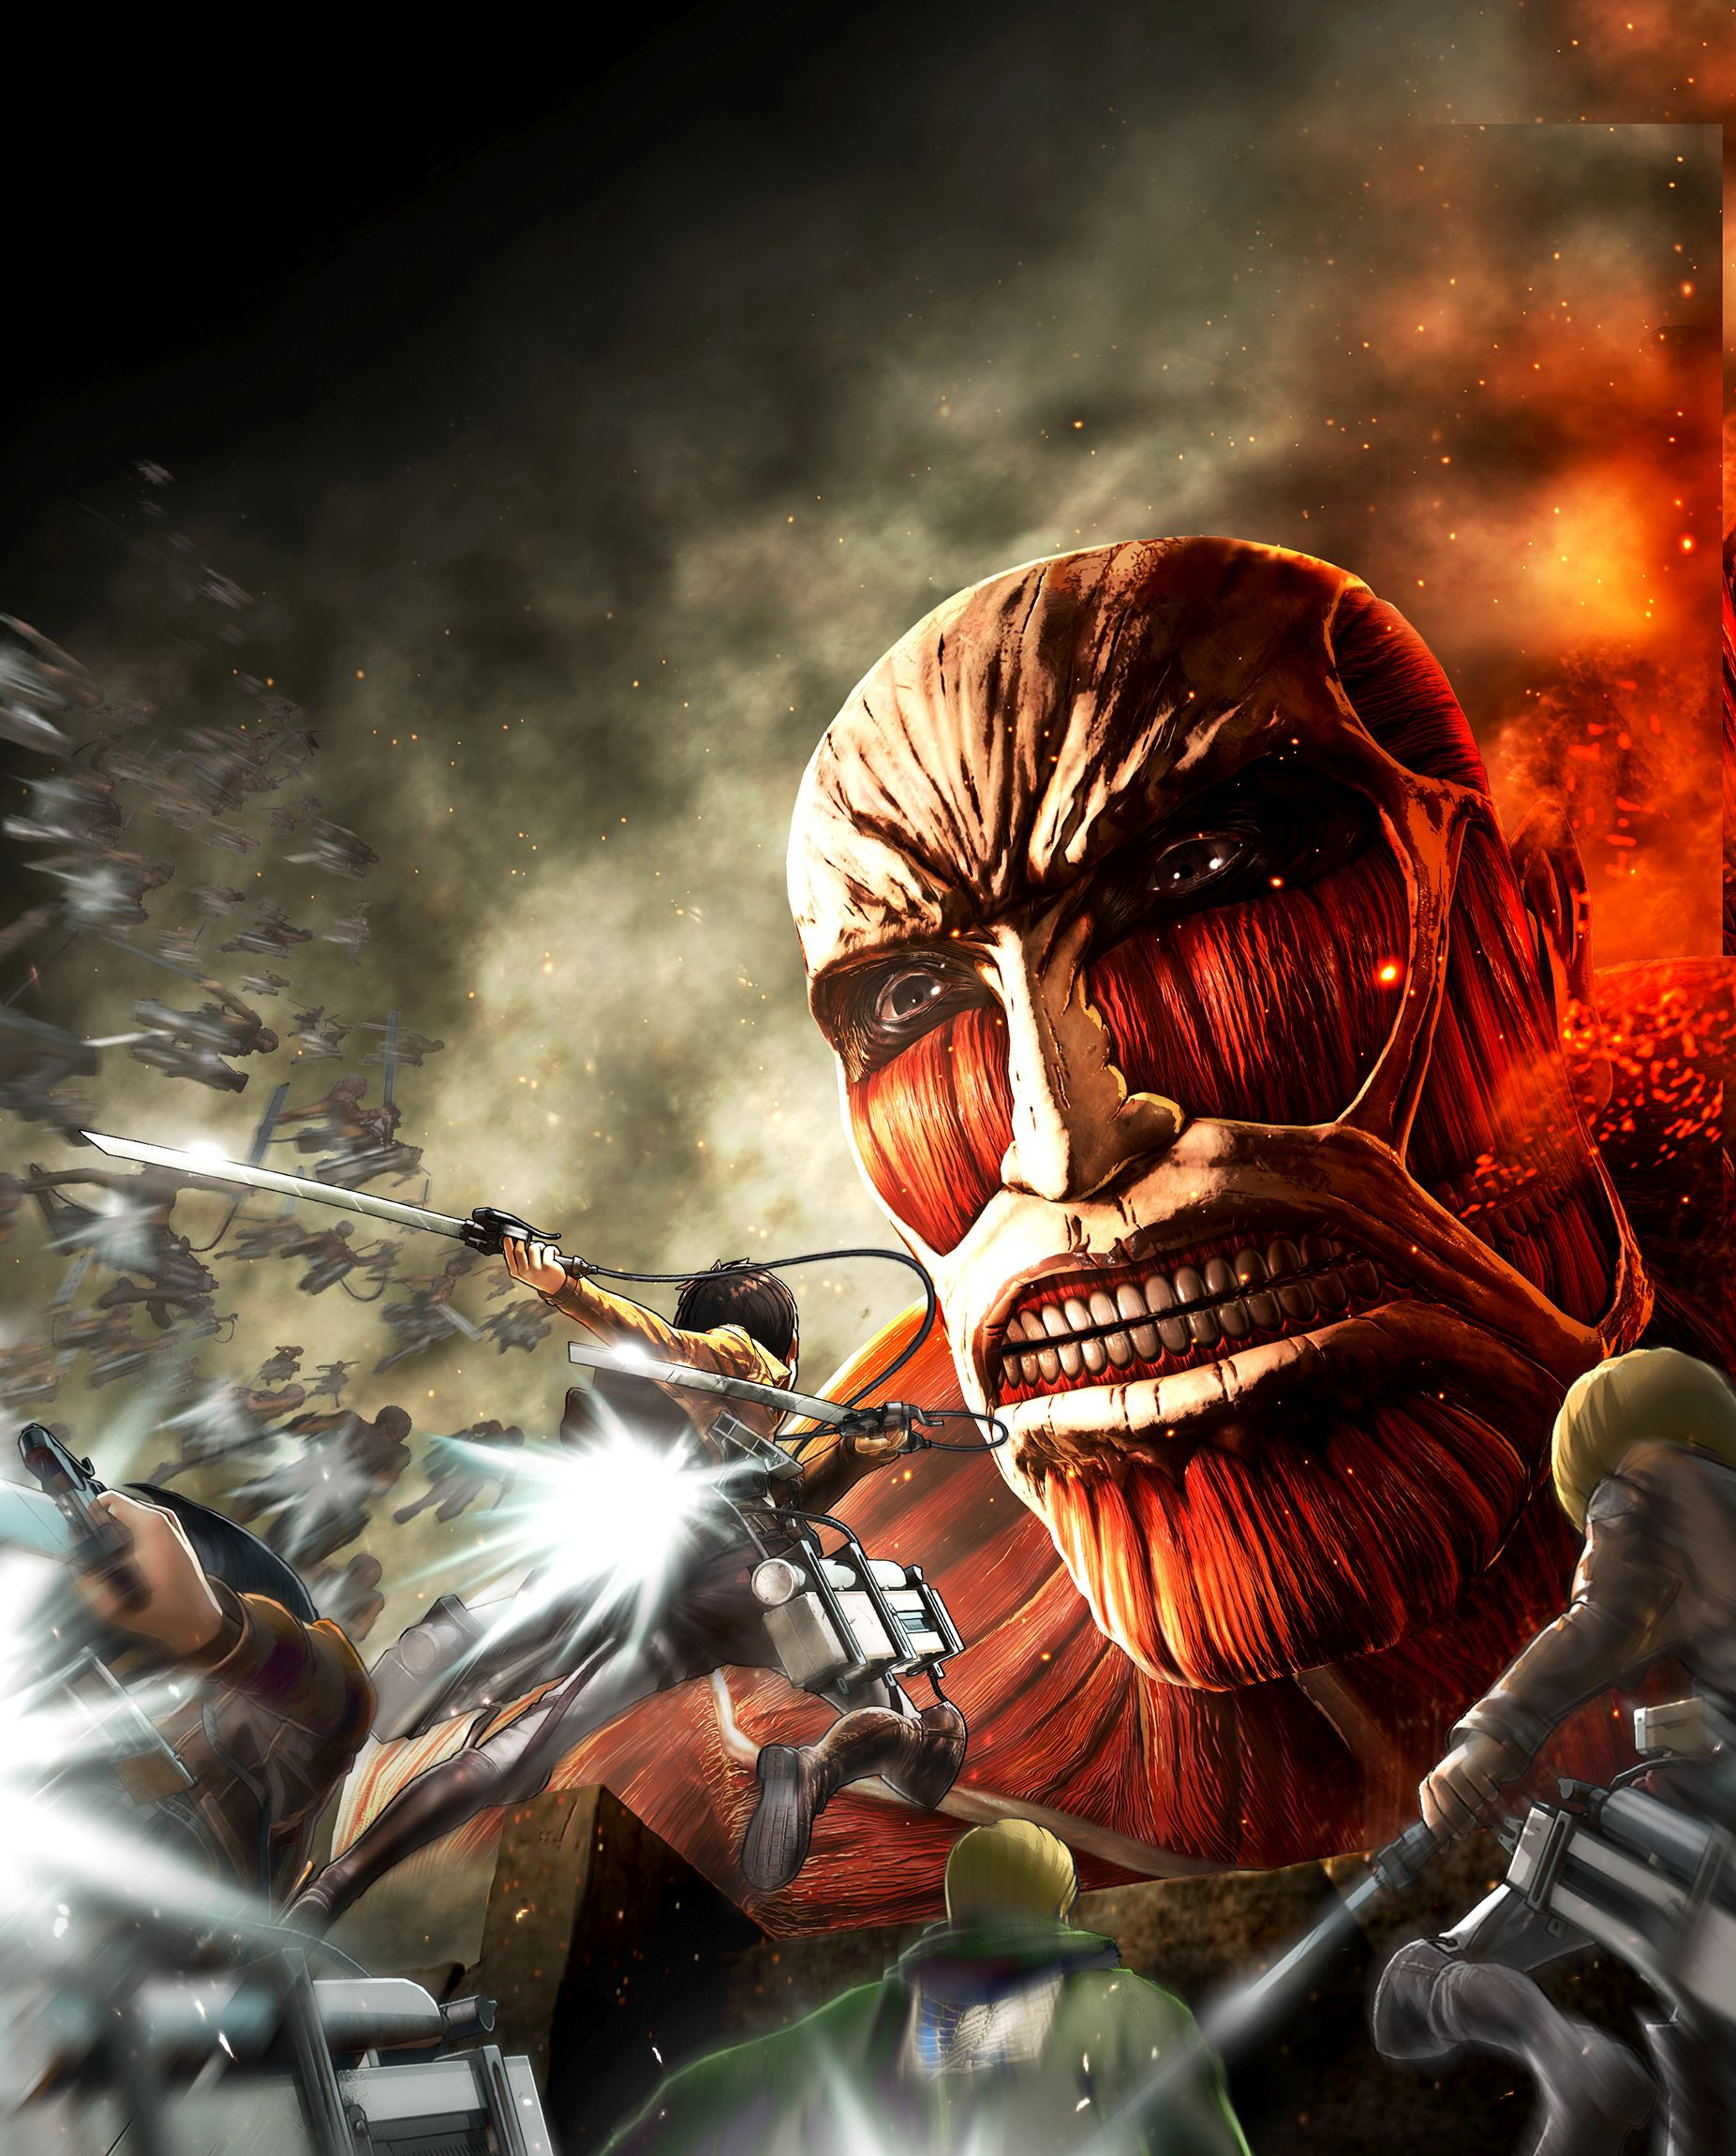 Attack On Titan Video Game Announcement Trailer, Art